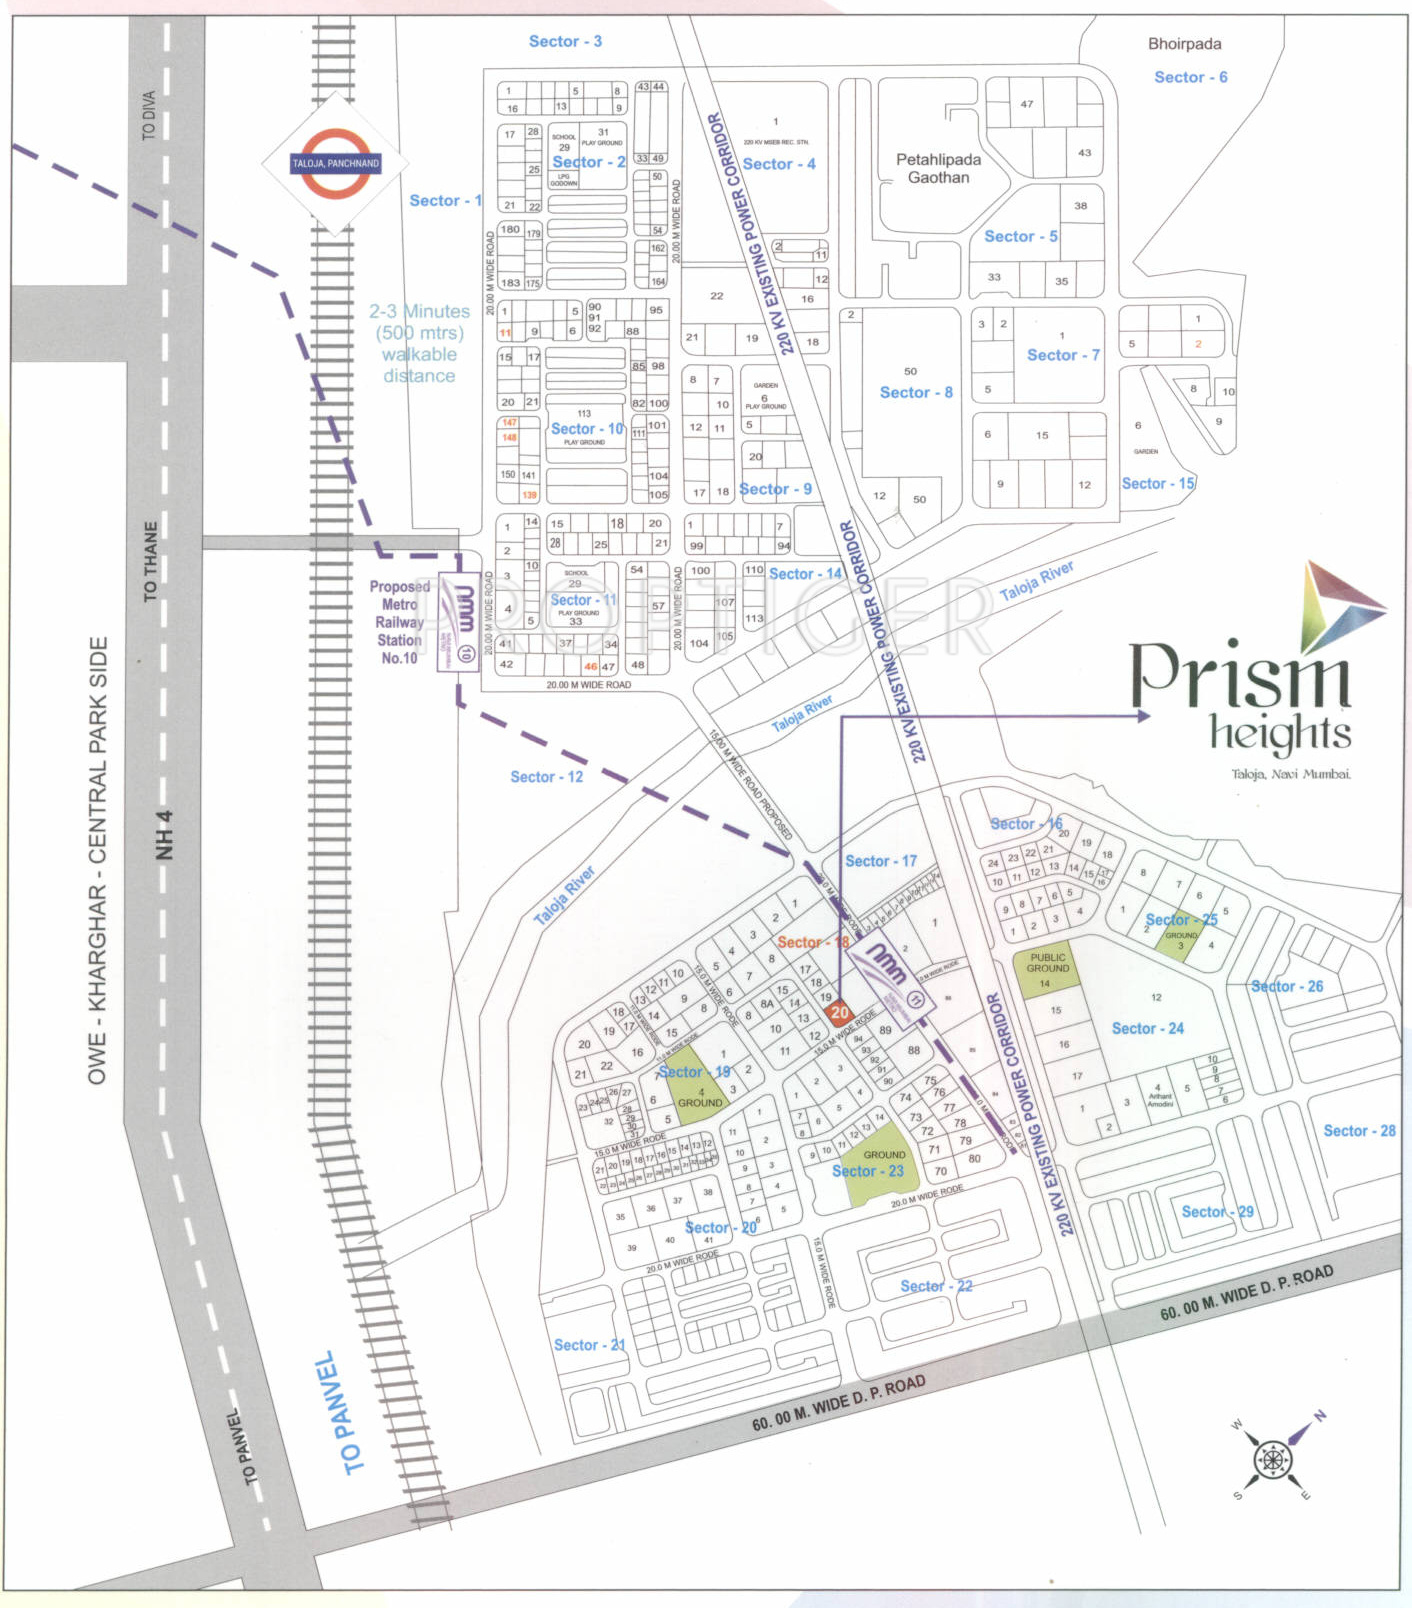 Plan And Elevation Of Prism : Prism heights in taloja mumbai price location map